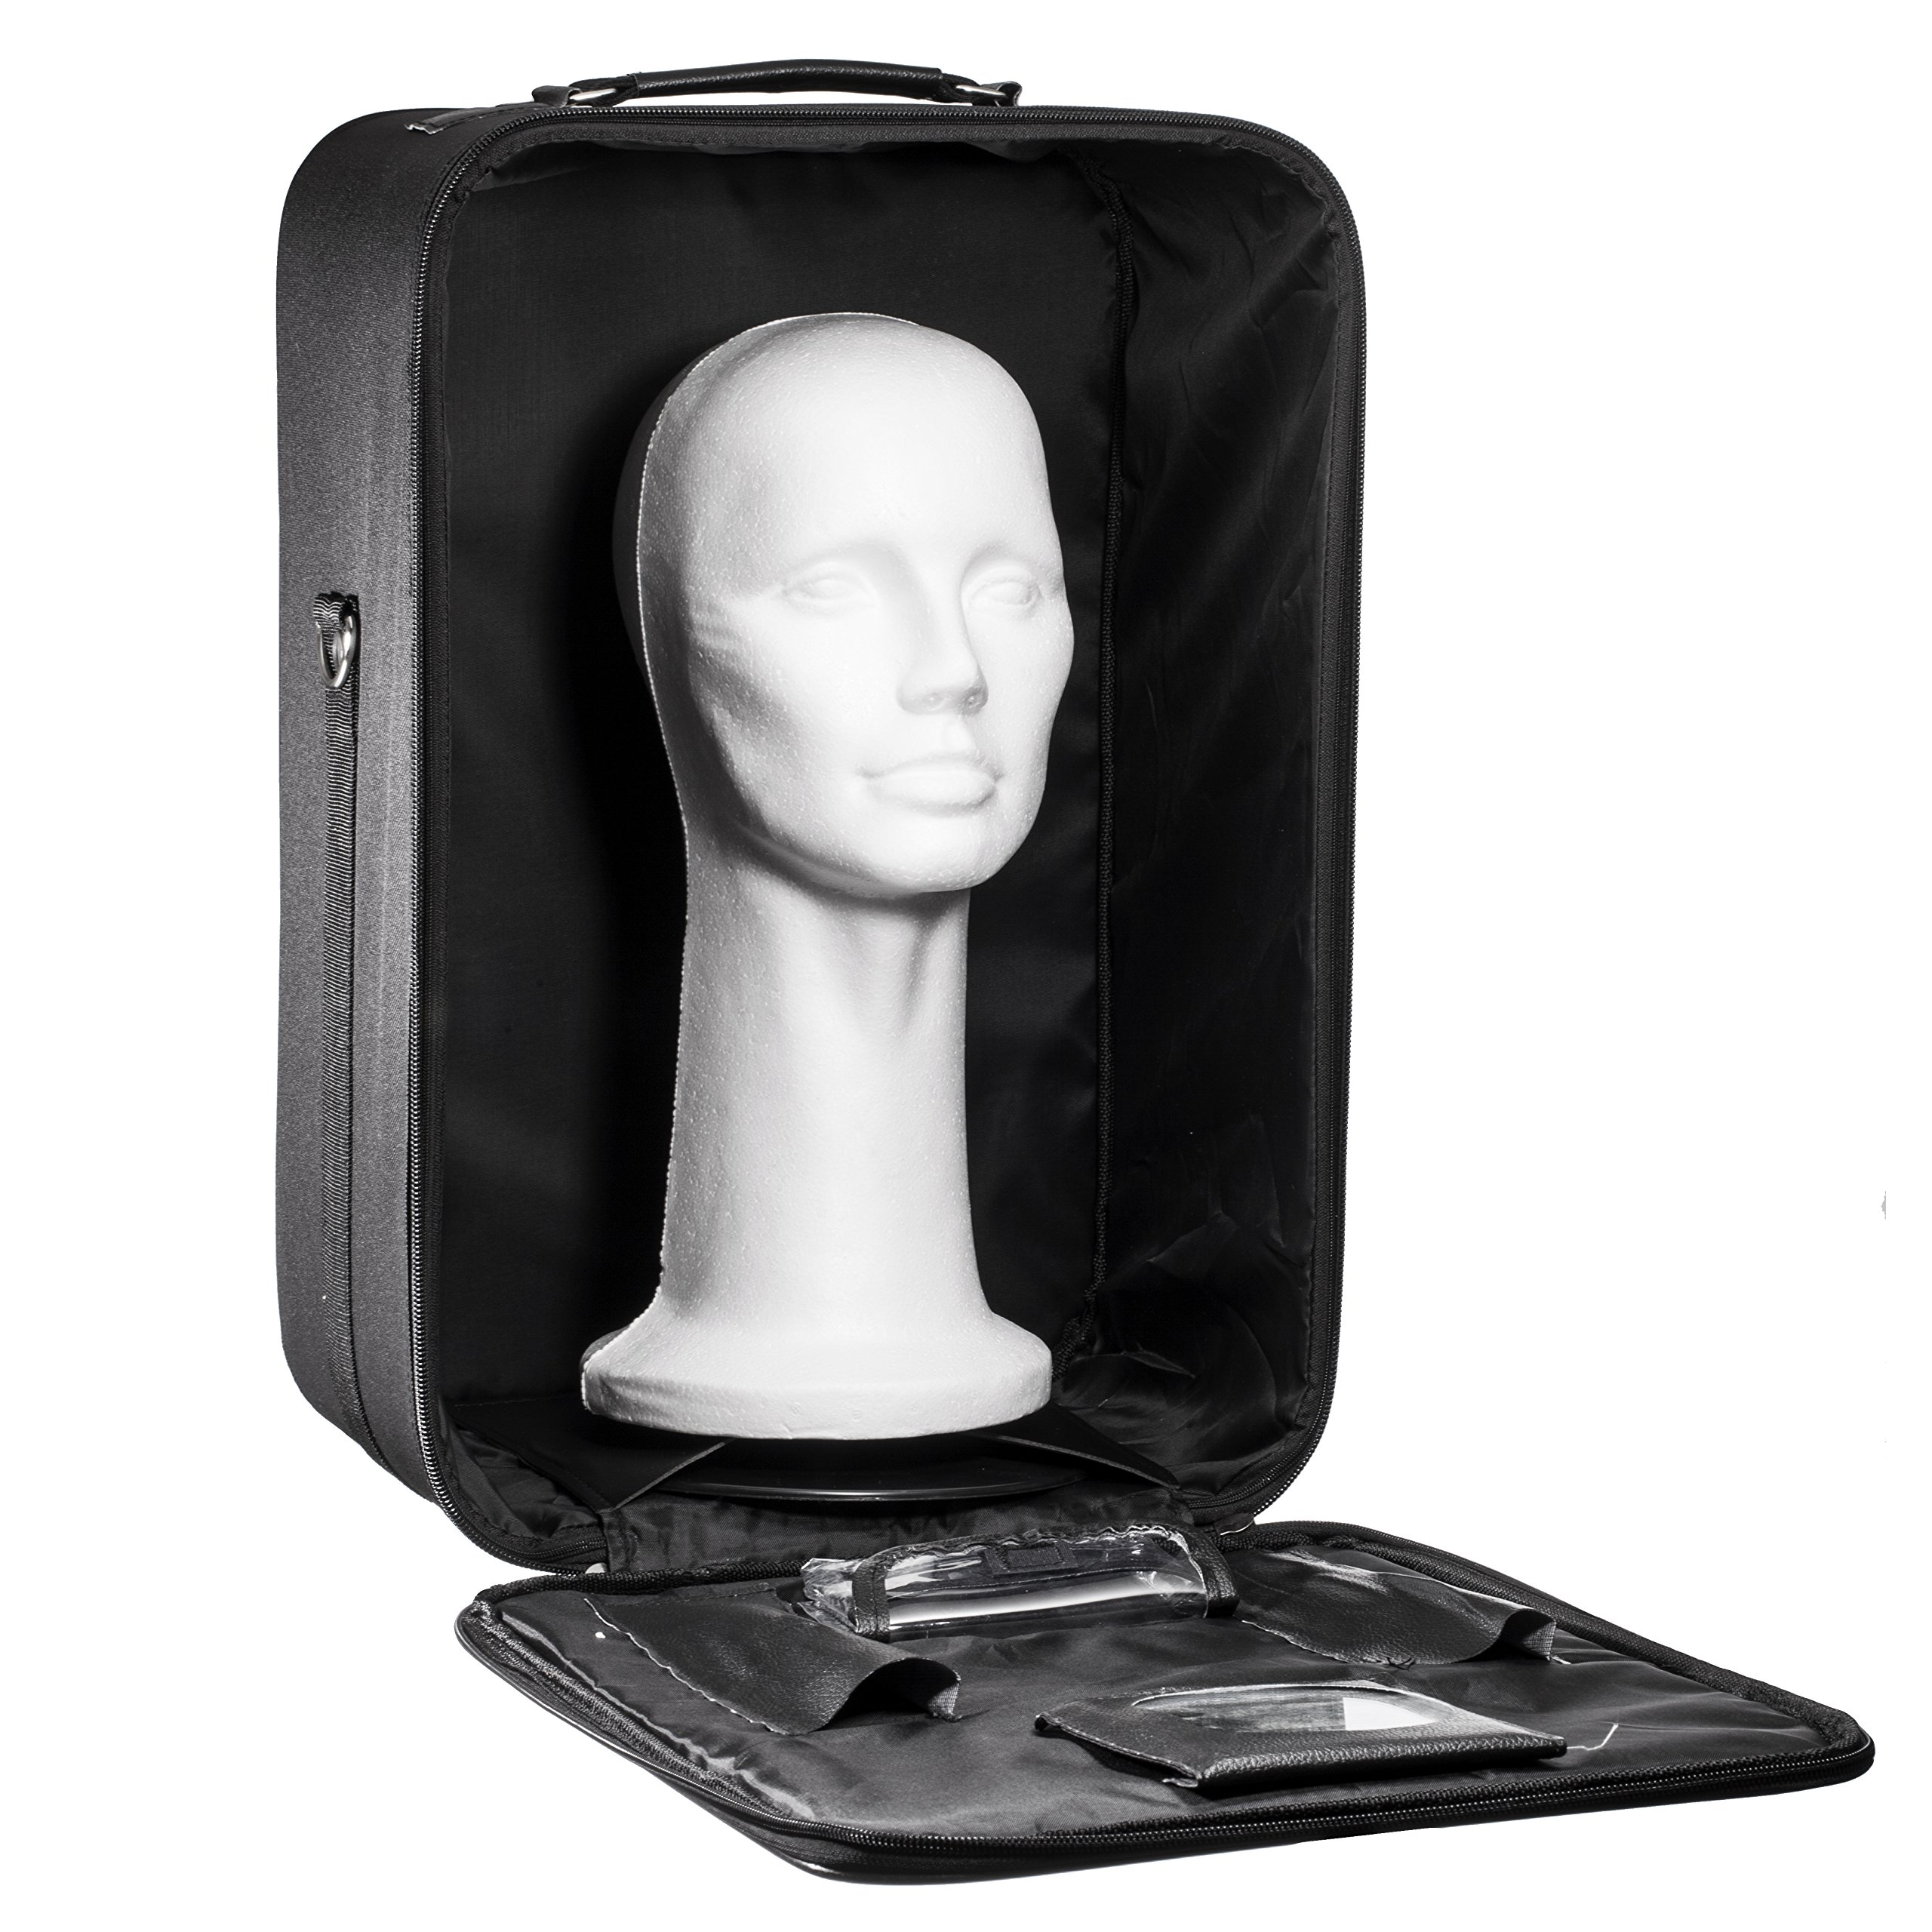 Travel Wig Case Combo Kit - 18'' Breathable Canvas Box with Carrying Handles and Shoulder Straps Plus 15'' Styrofoam Manikin Head - By Dini Wigs